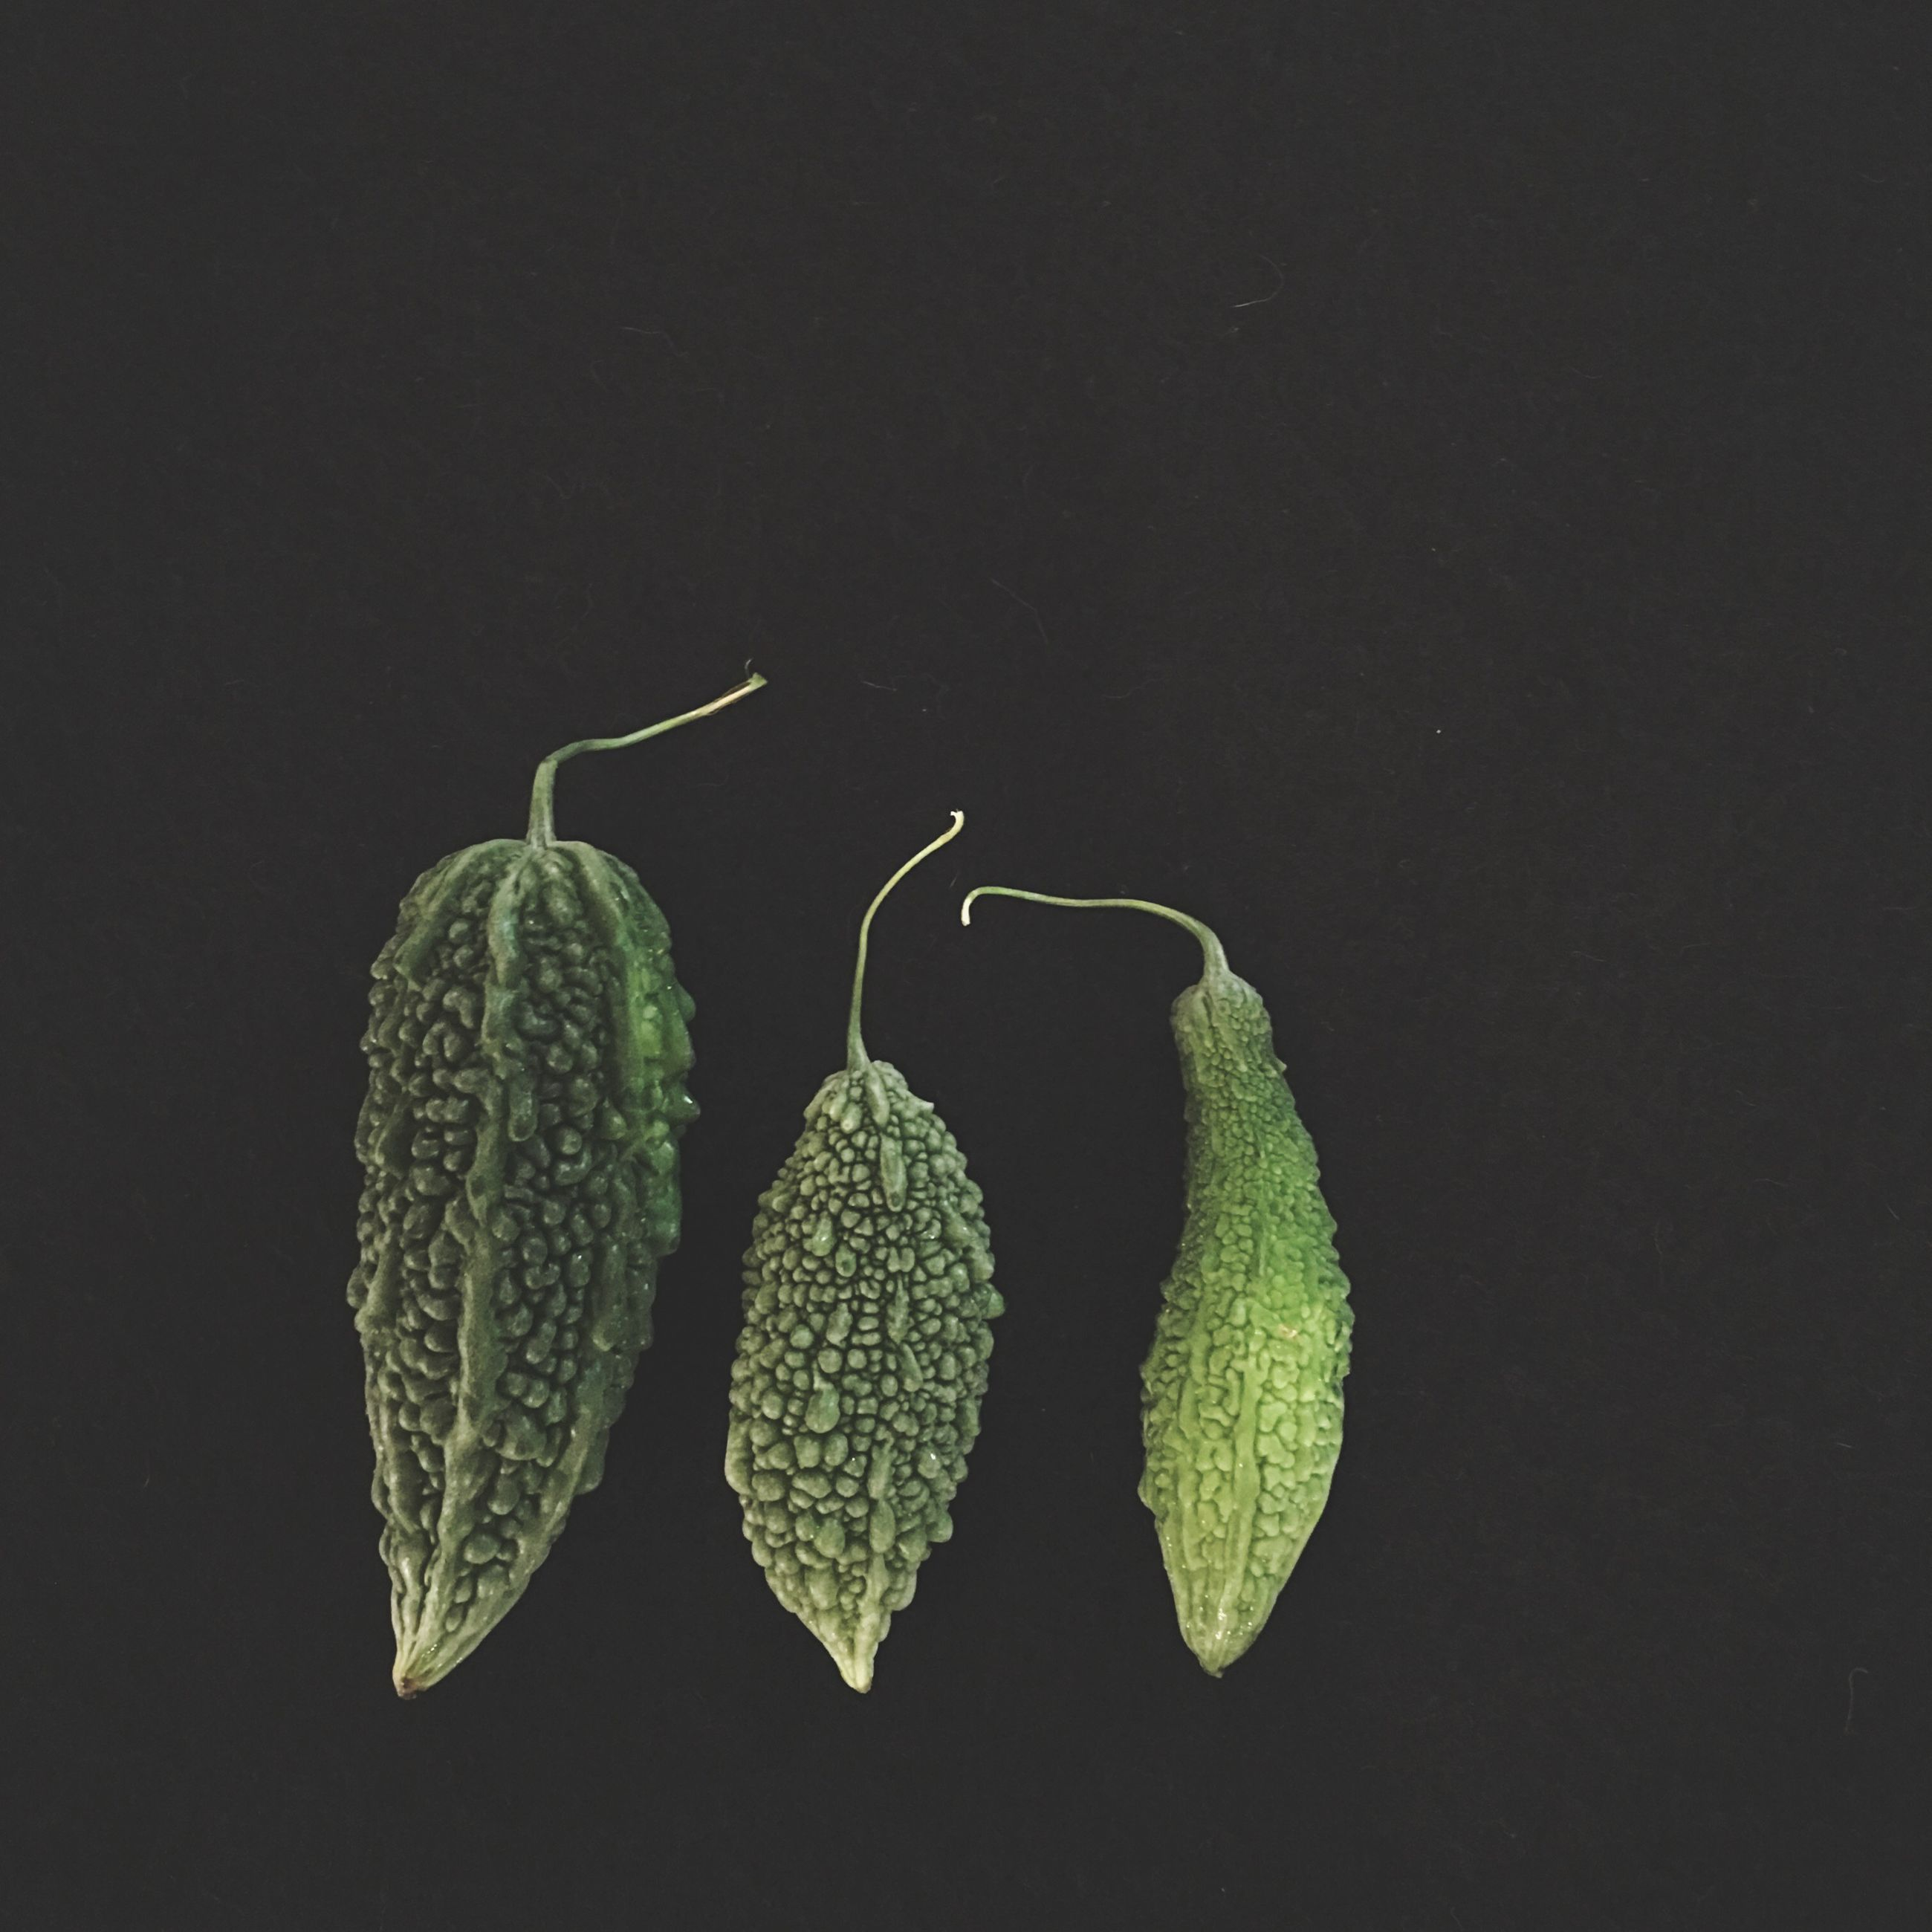 close-up, botany, growth, dark, night, plant, green color, studio shot, flower, springtime, black background, freshness, blossom, nature, dew, beauty in nature, no people, in bloom, vibrant color, green